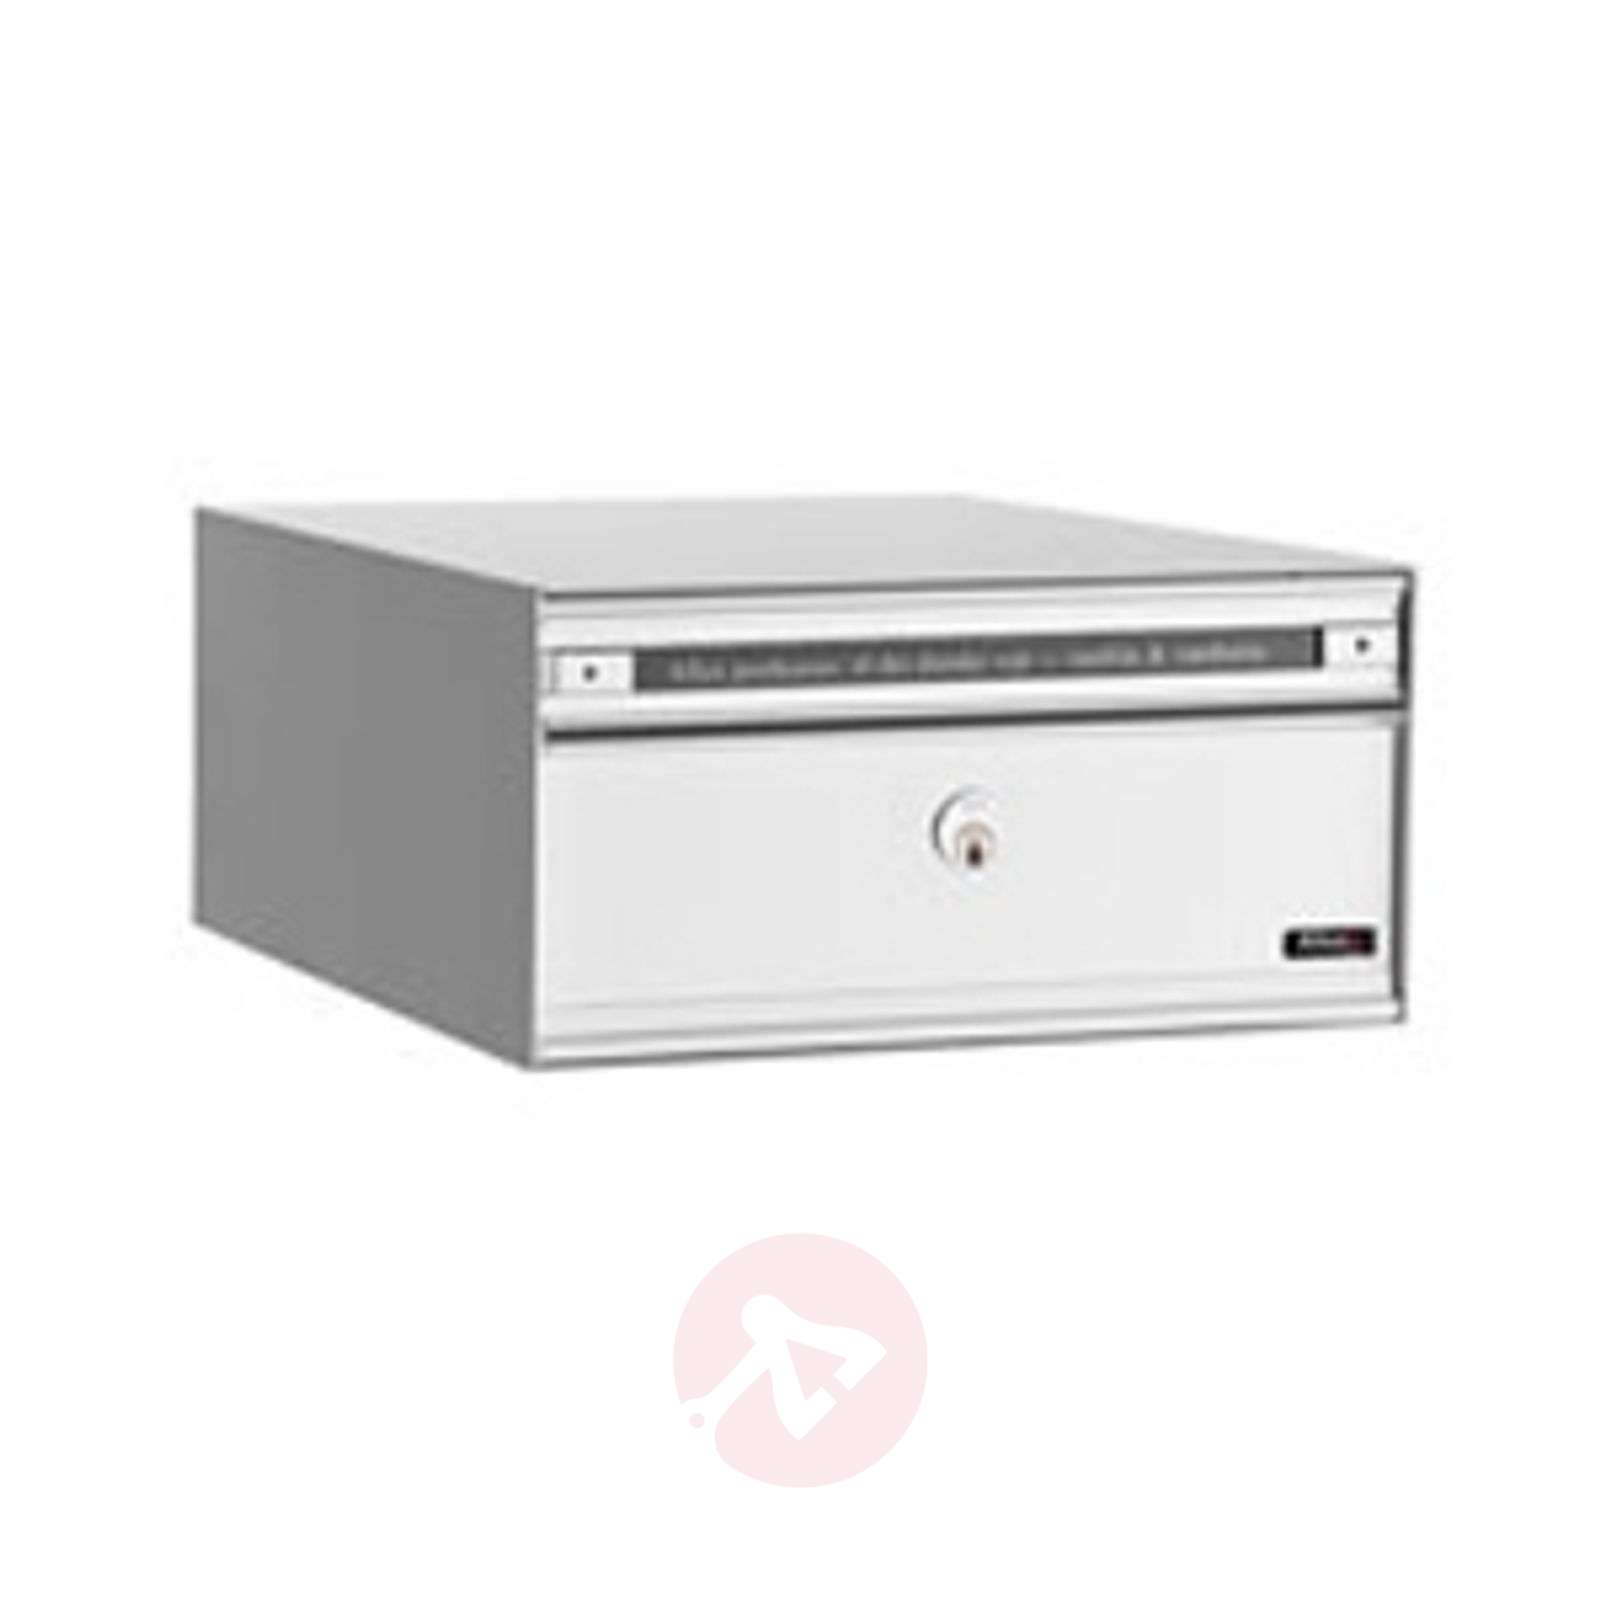 Expandable letterbox PC1, steel front-1045061X-01